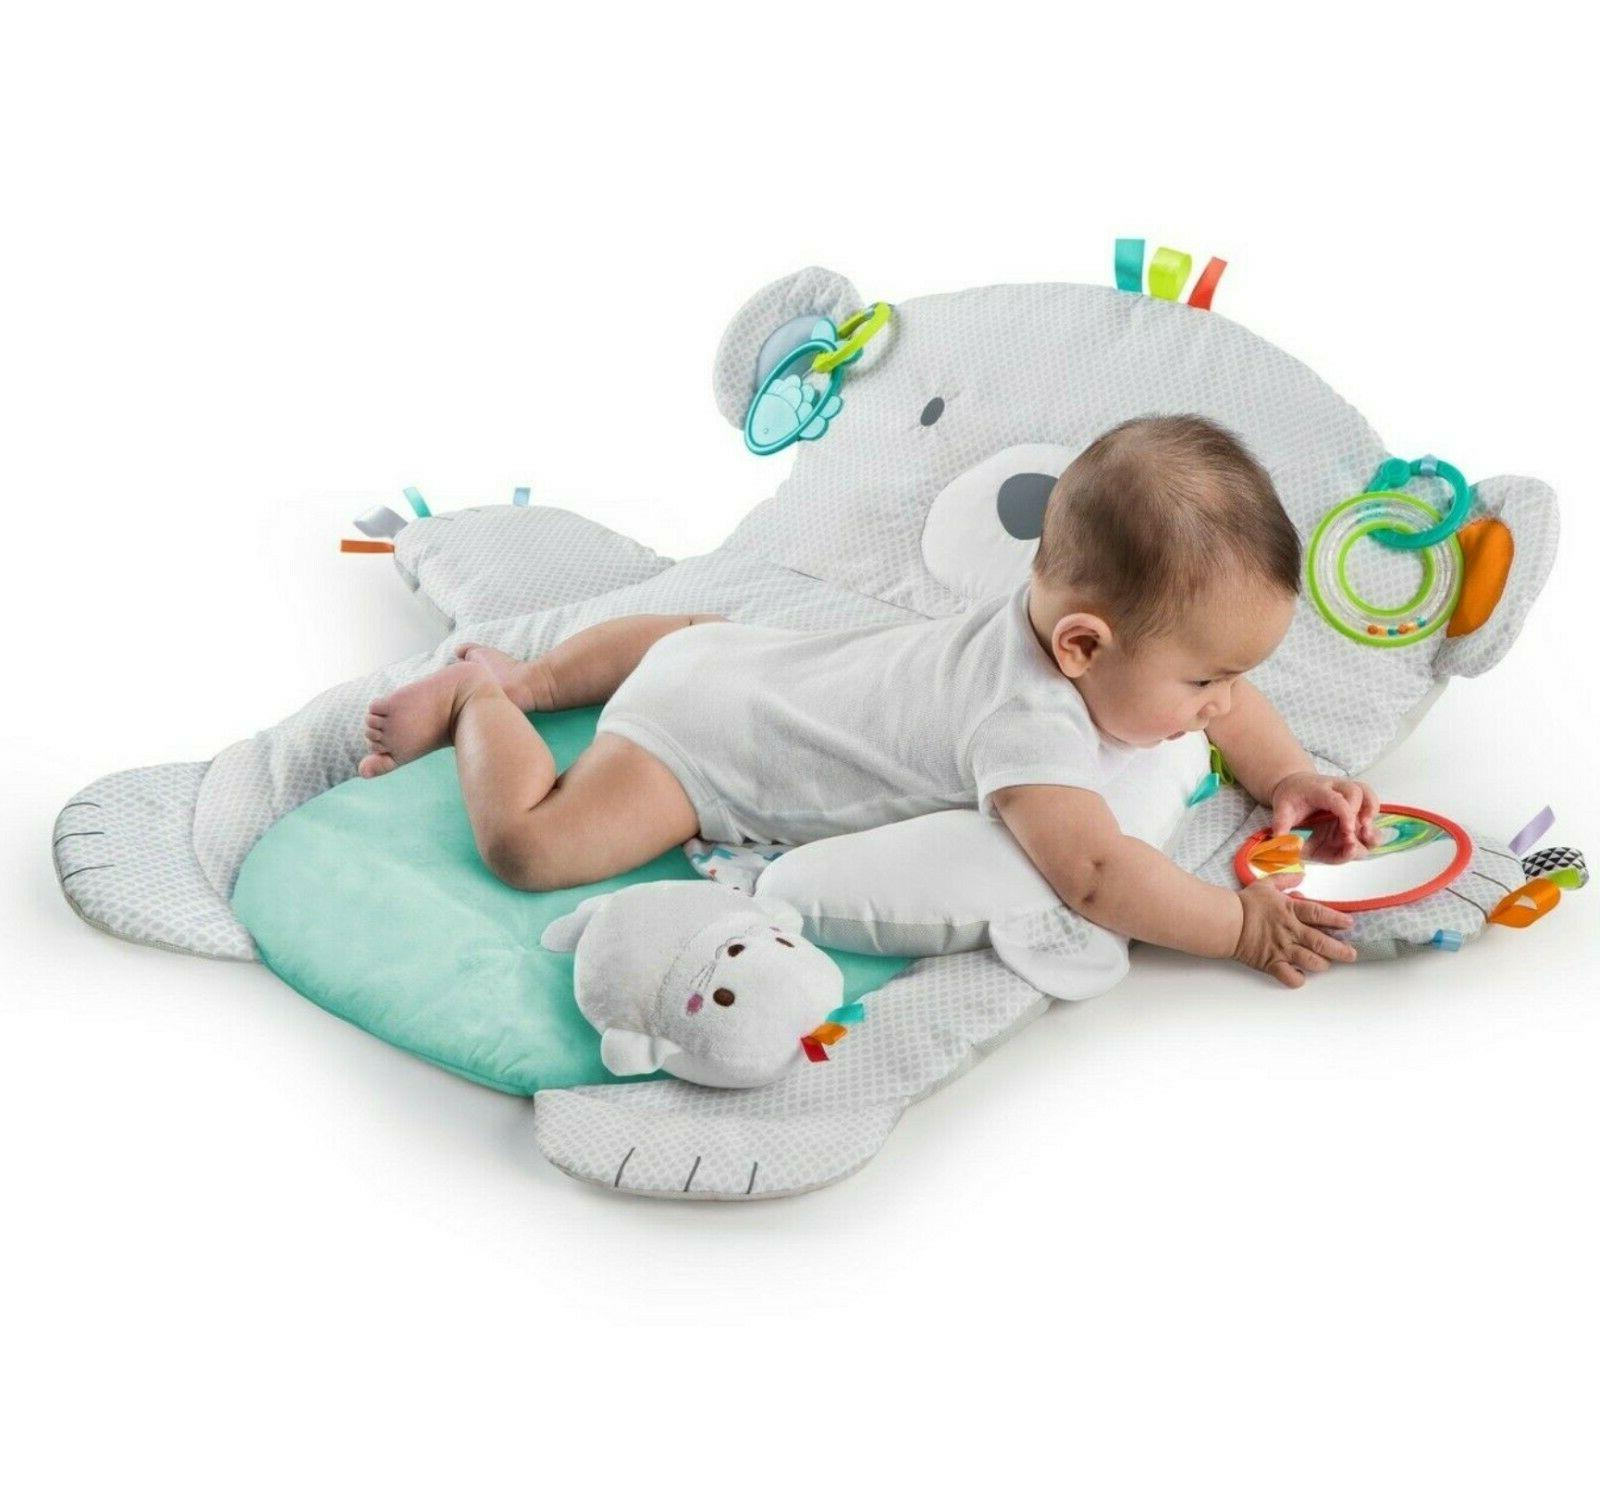 new tummy time prop and play on